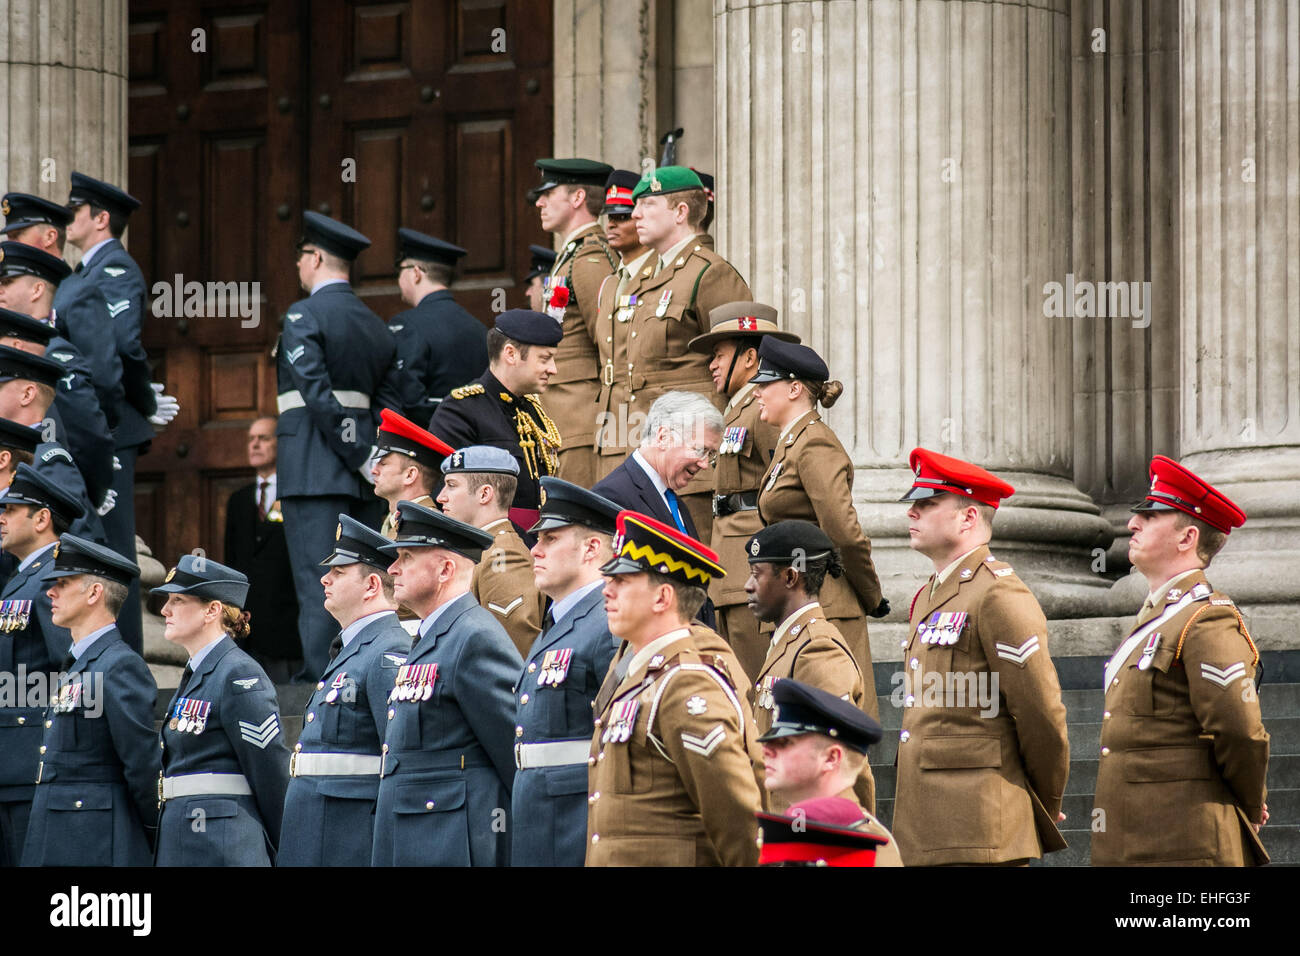 London, UK. 13th March, 2015. Michael Fallon MP attends the Afghanistan Commemoration at St. Paul's Cathedral Credit: - Stock Image